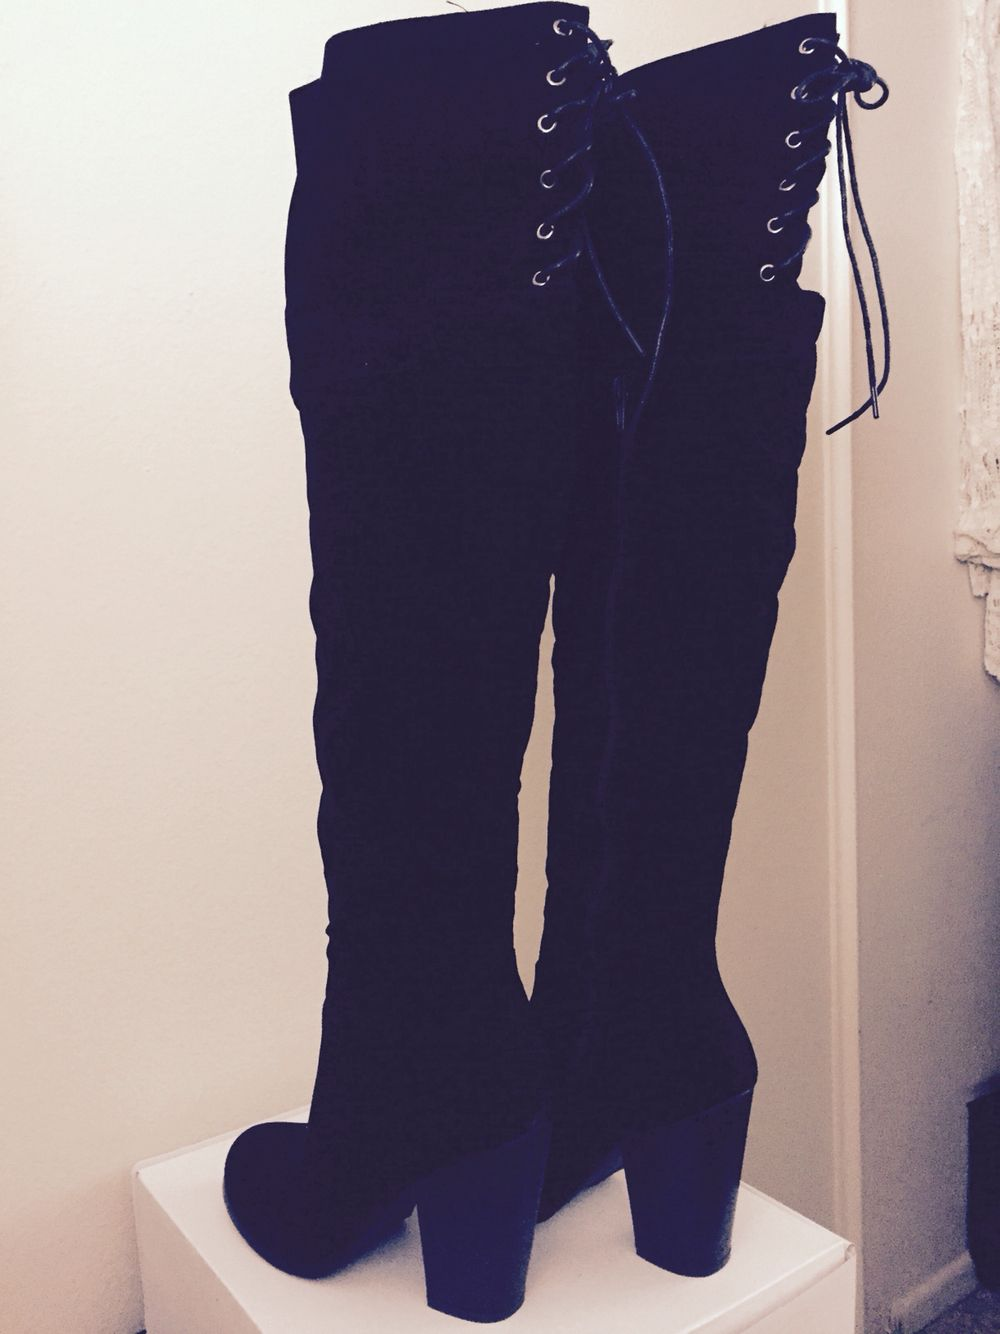 081e940e5667 NEW. Thigh high boots from Windsor store , so in love | Outfits ...